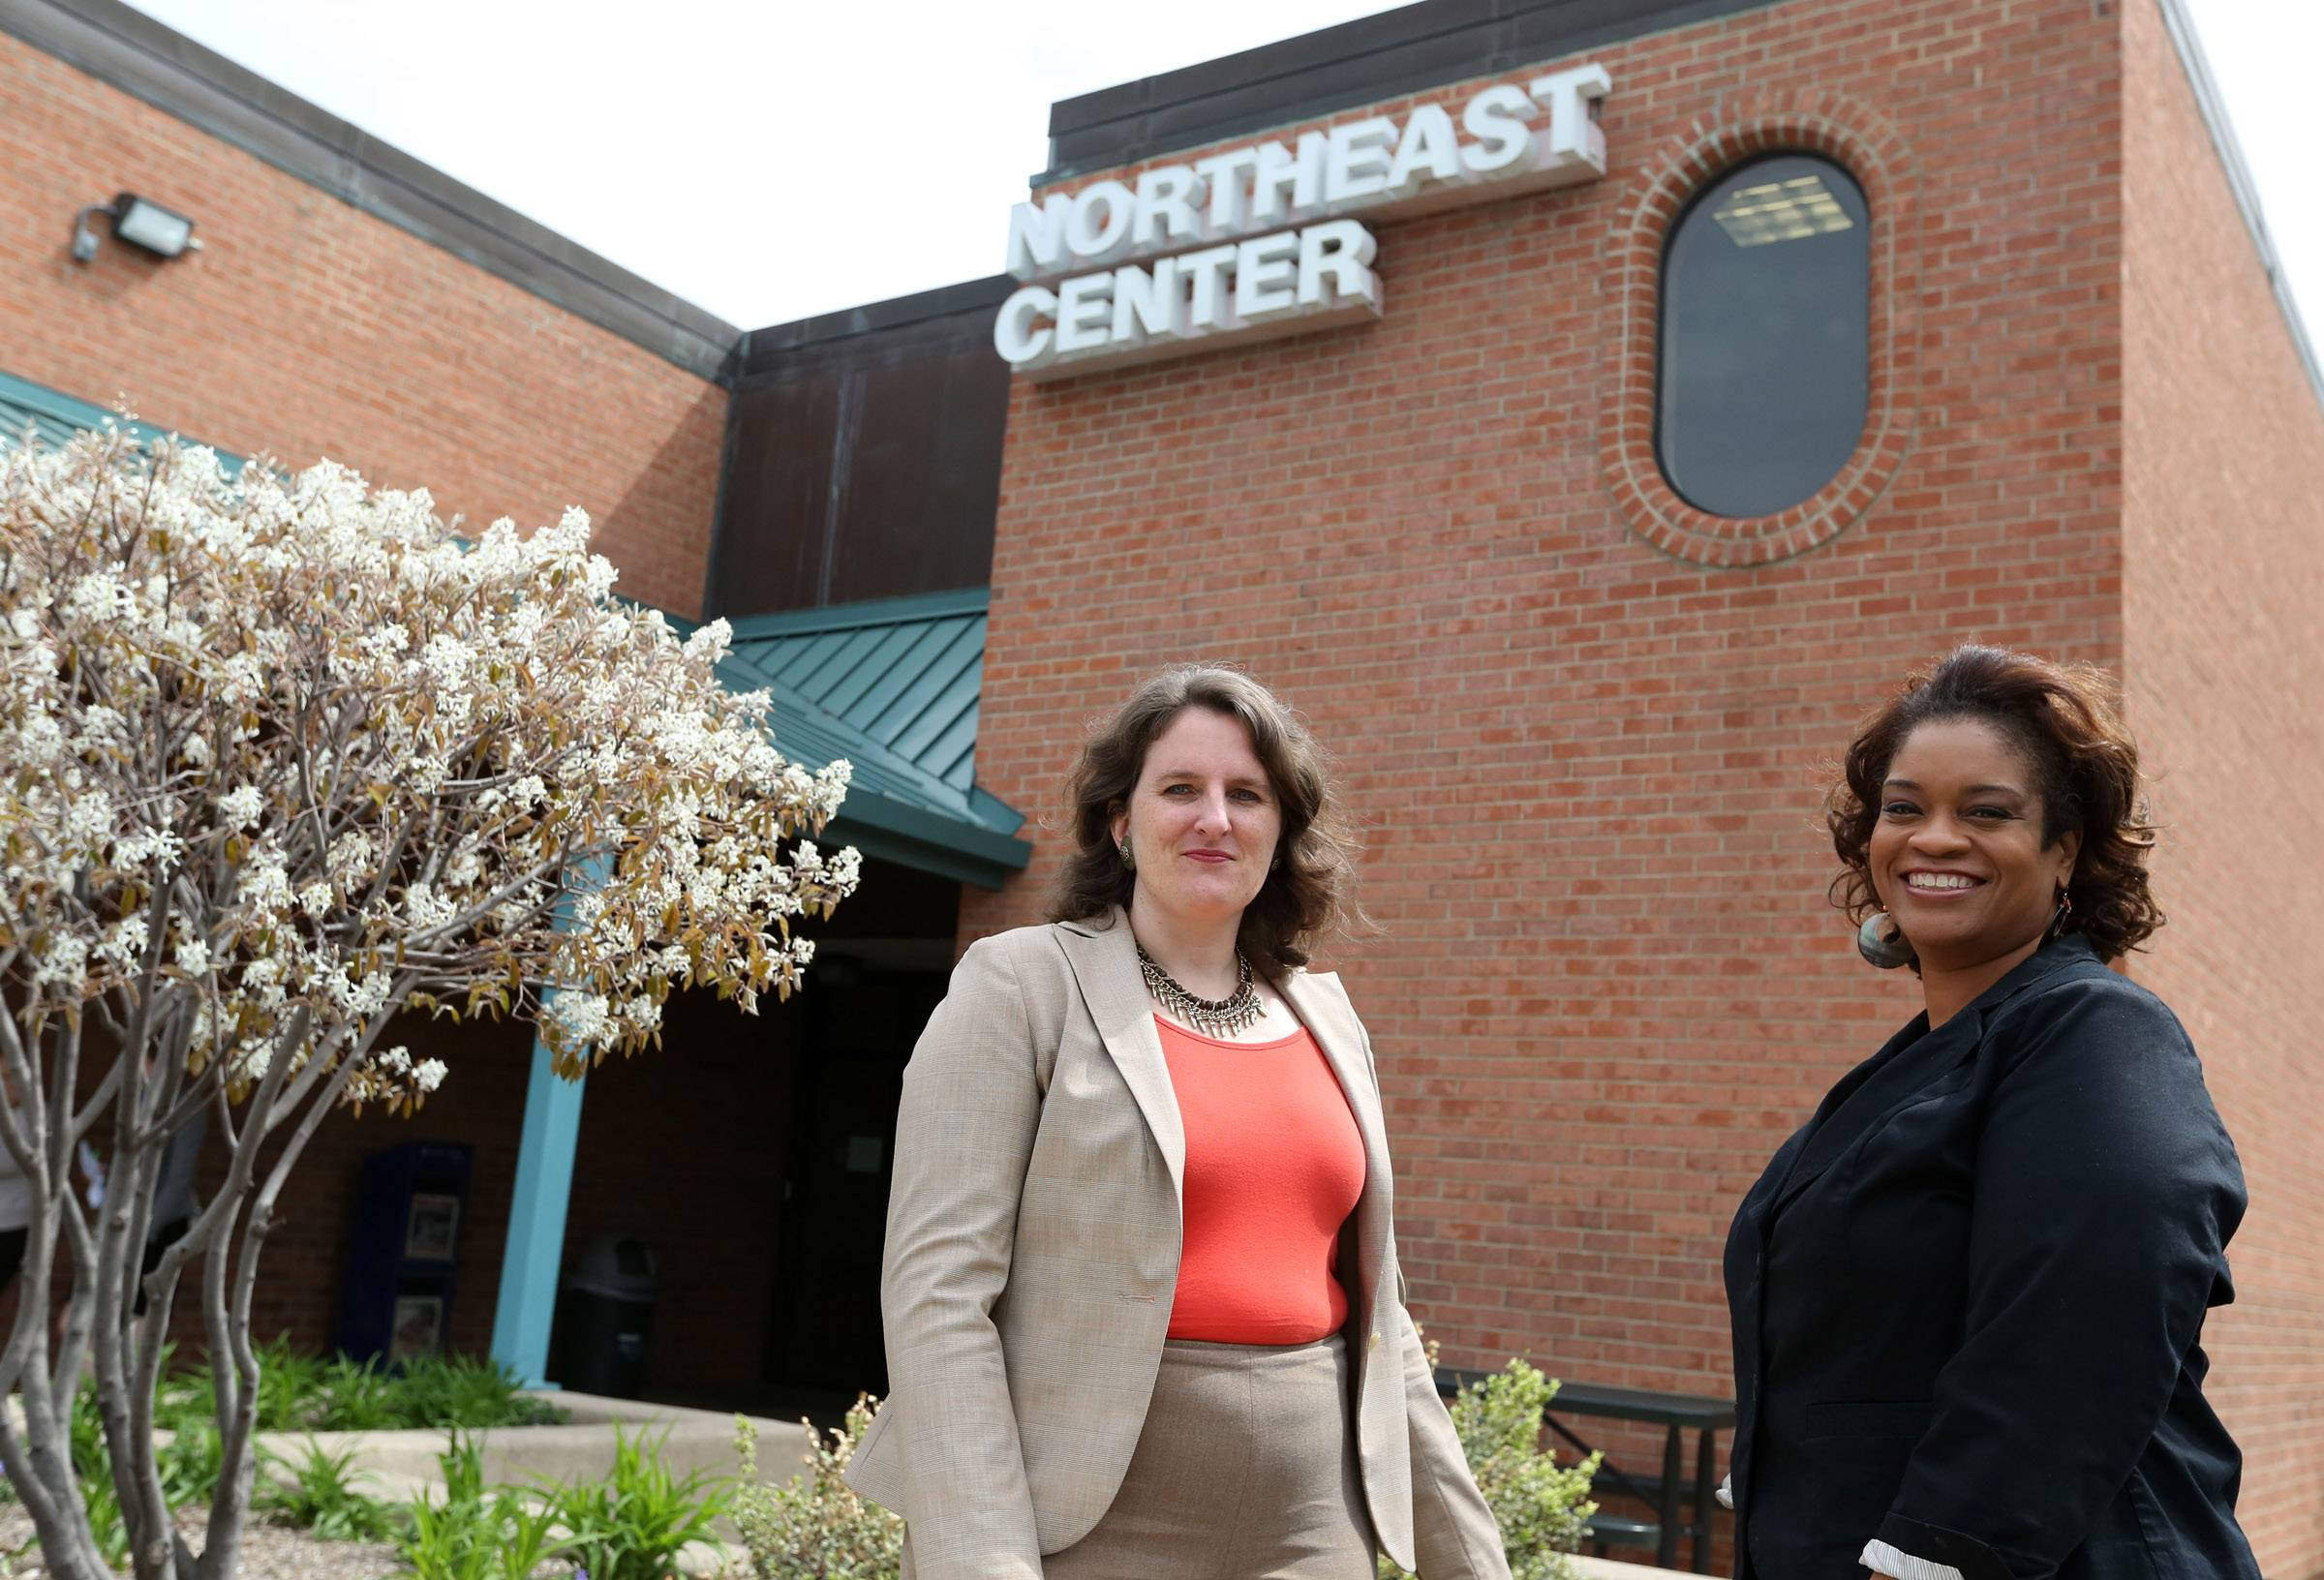 Harper College Dean Kenya Ayers, right, oversees a project to overhaul the Northeast Center in Prospect Heights. Jennifer Brennan, left is the center's new supervisor.